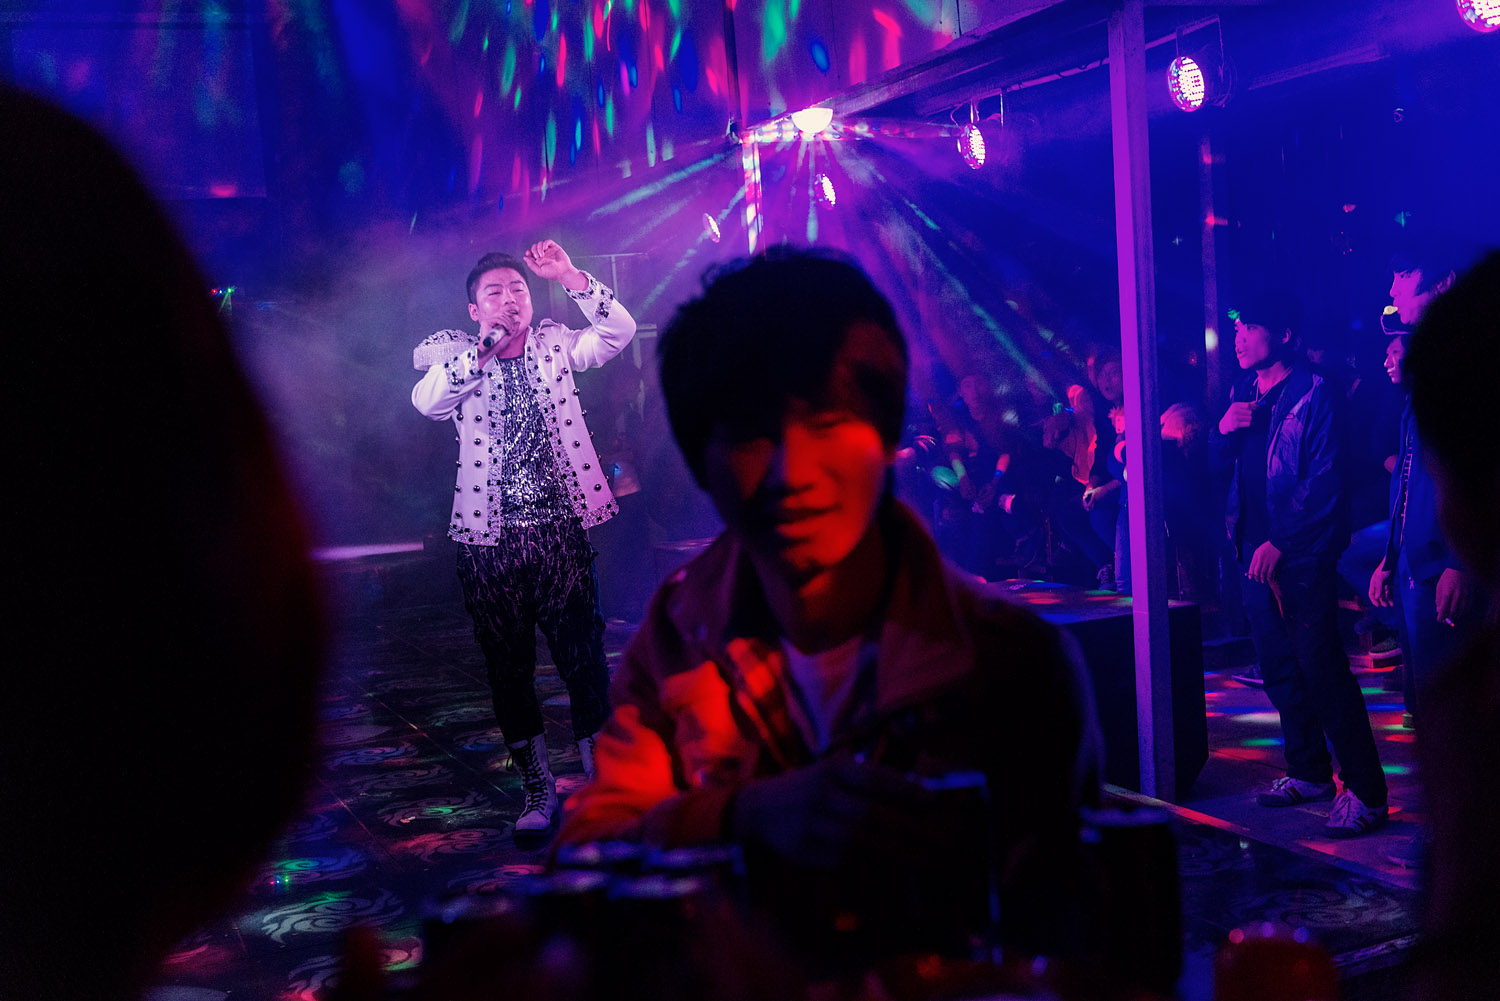 During a performance, at a club, in Foxconn factory town on the outskirts of Zhengzhou.